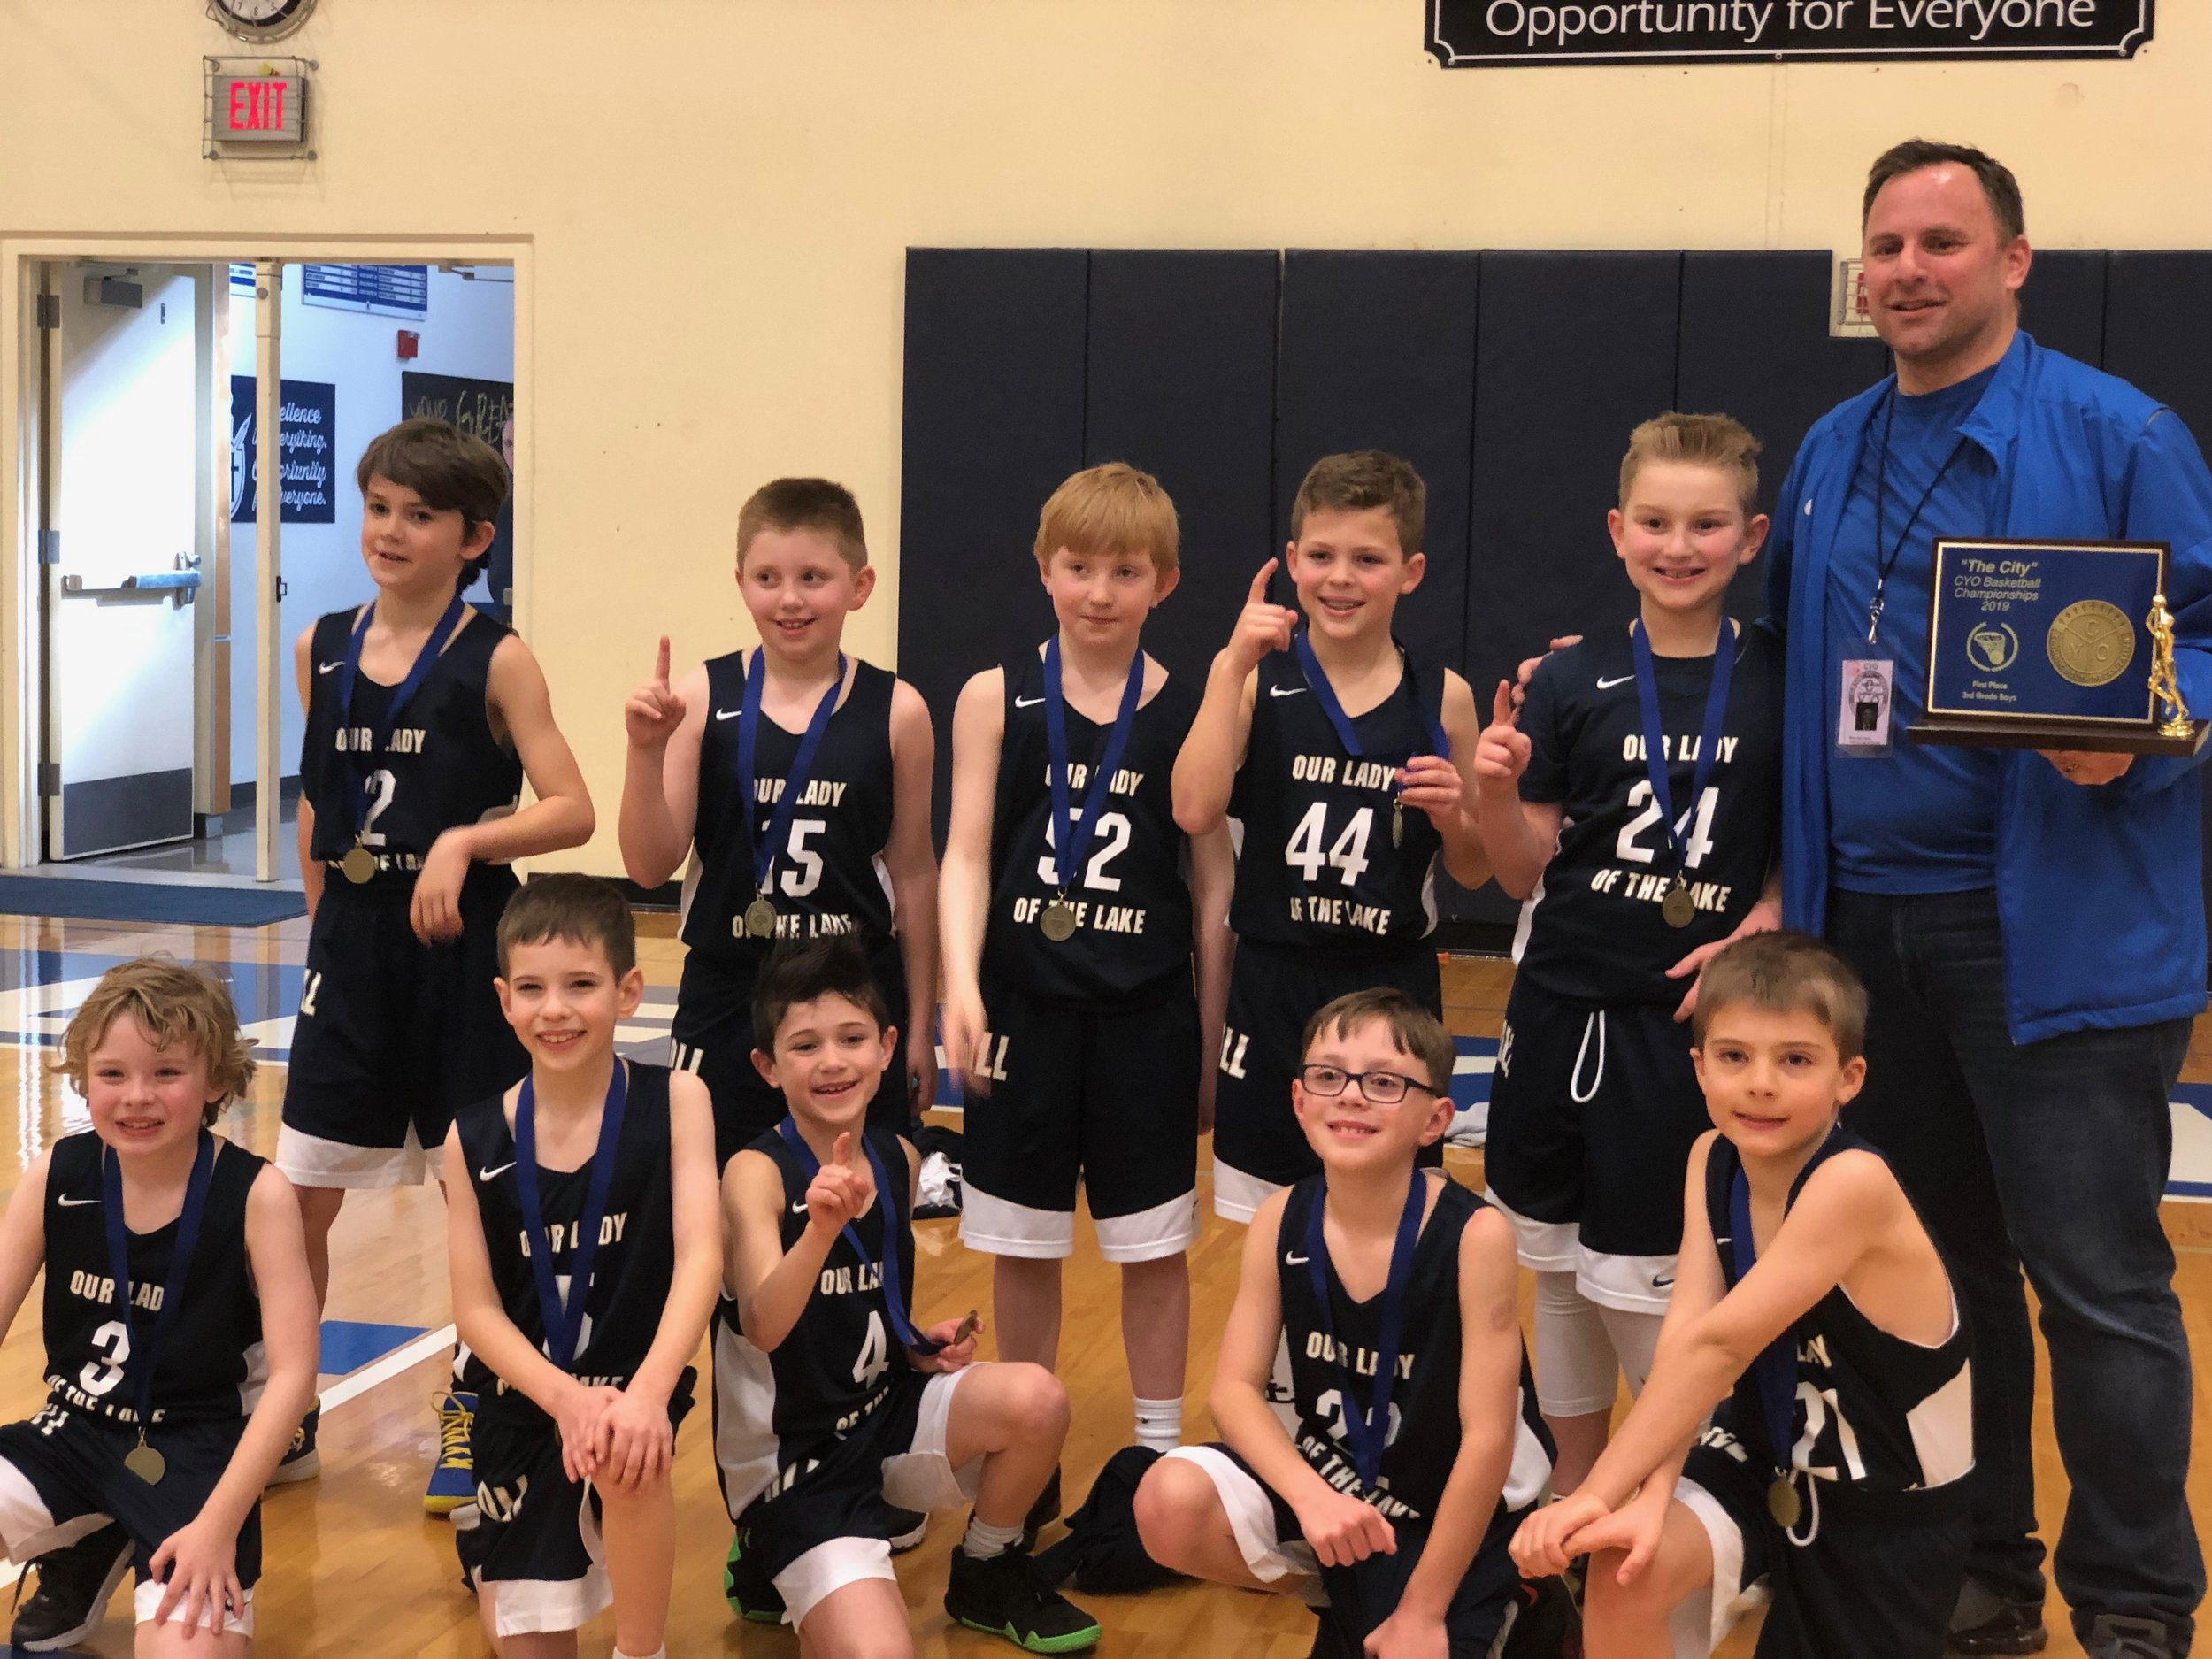 Community involvement is a top priority for Directors Mortgage Founder & Owner Mark J. Hanna, shown here coaching youth basketball.